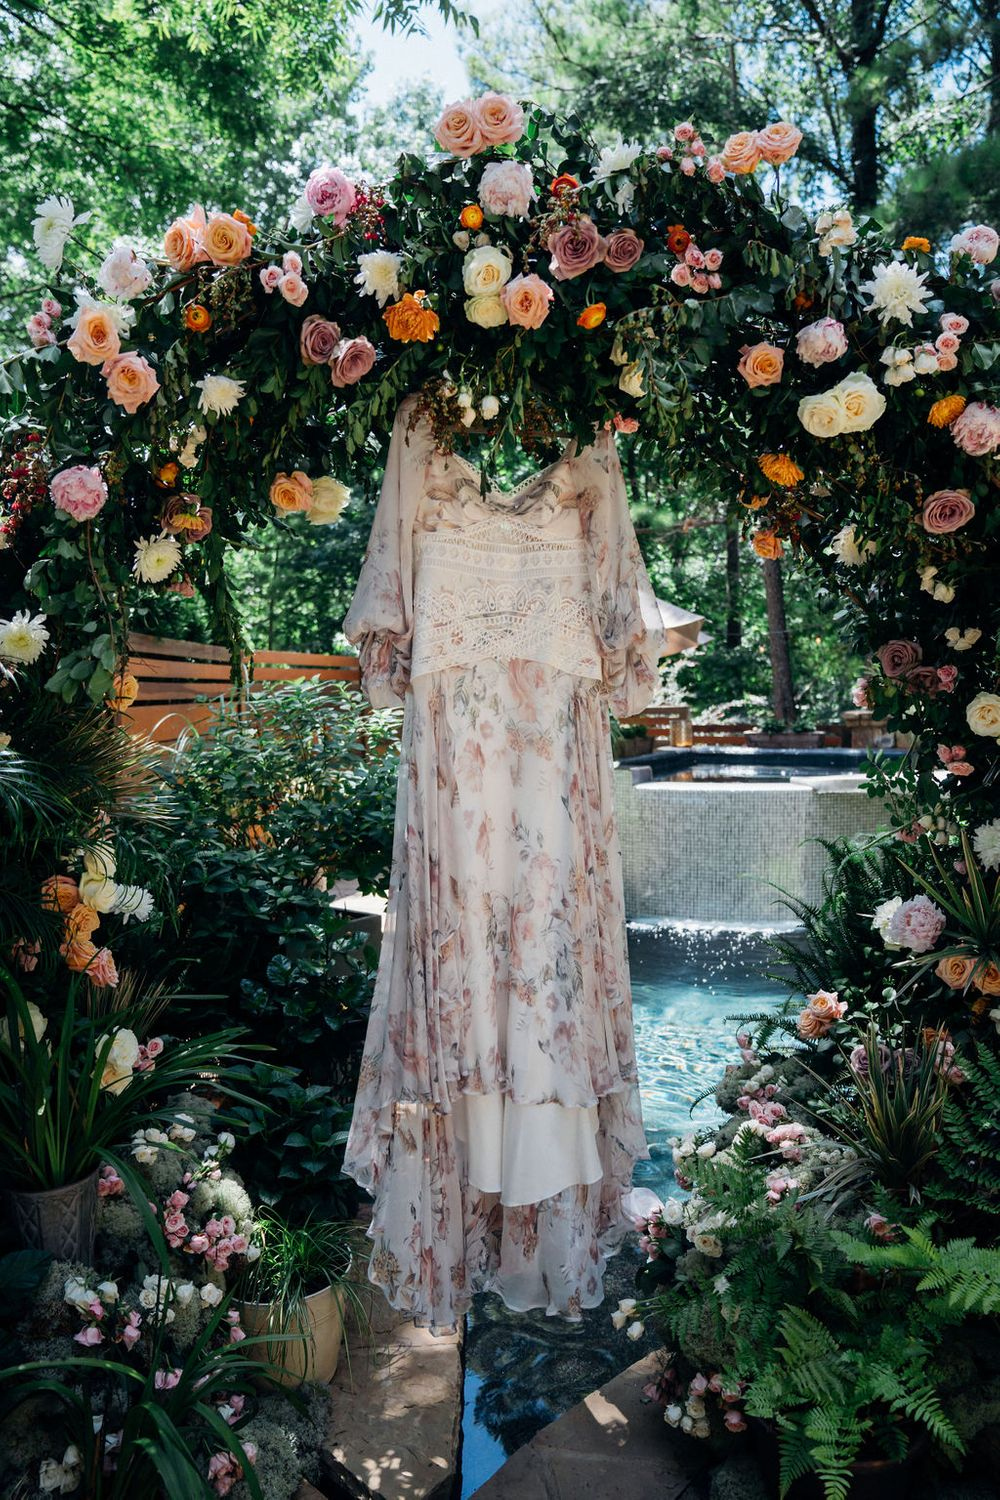 dress hanging in floral arch